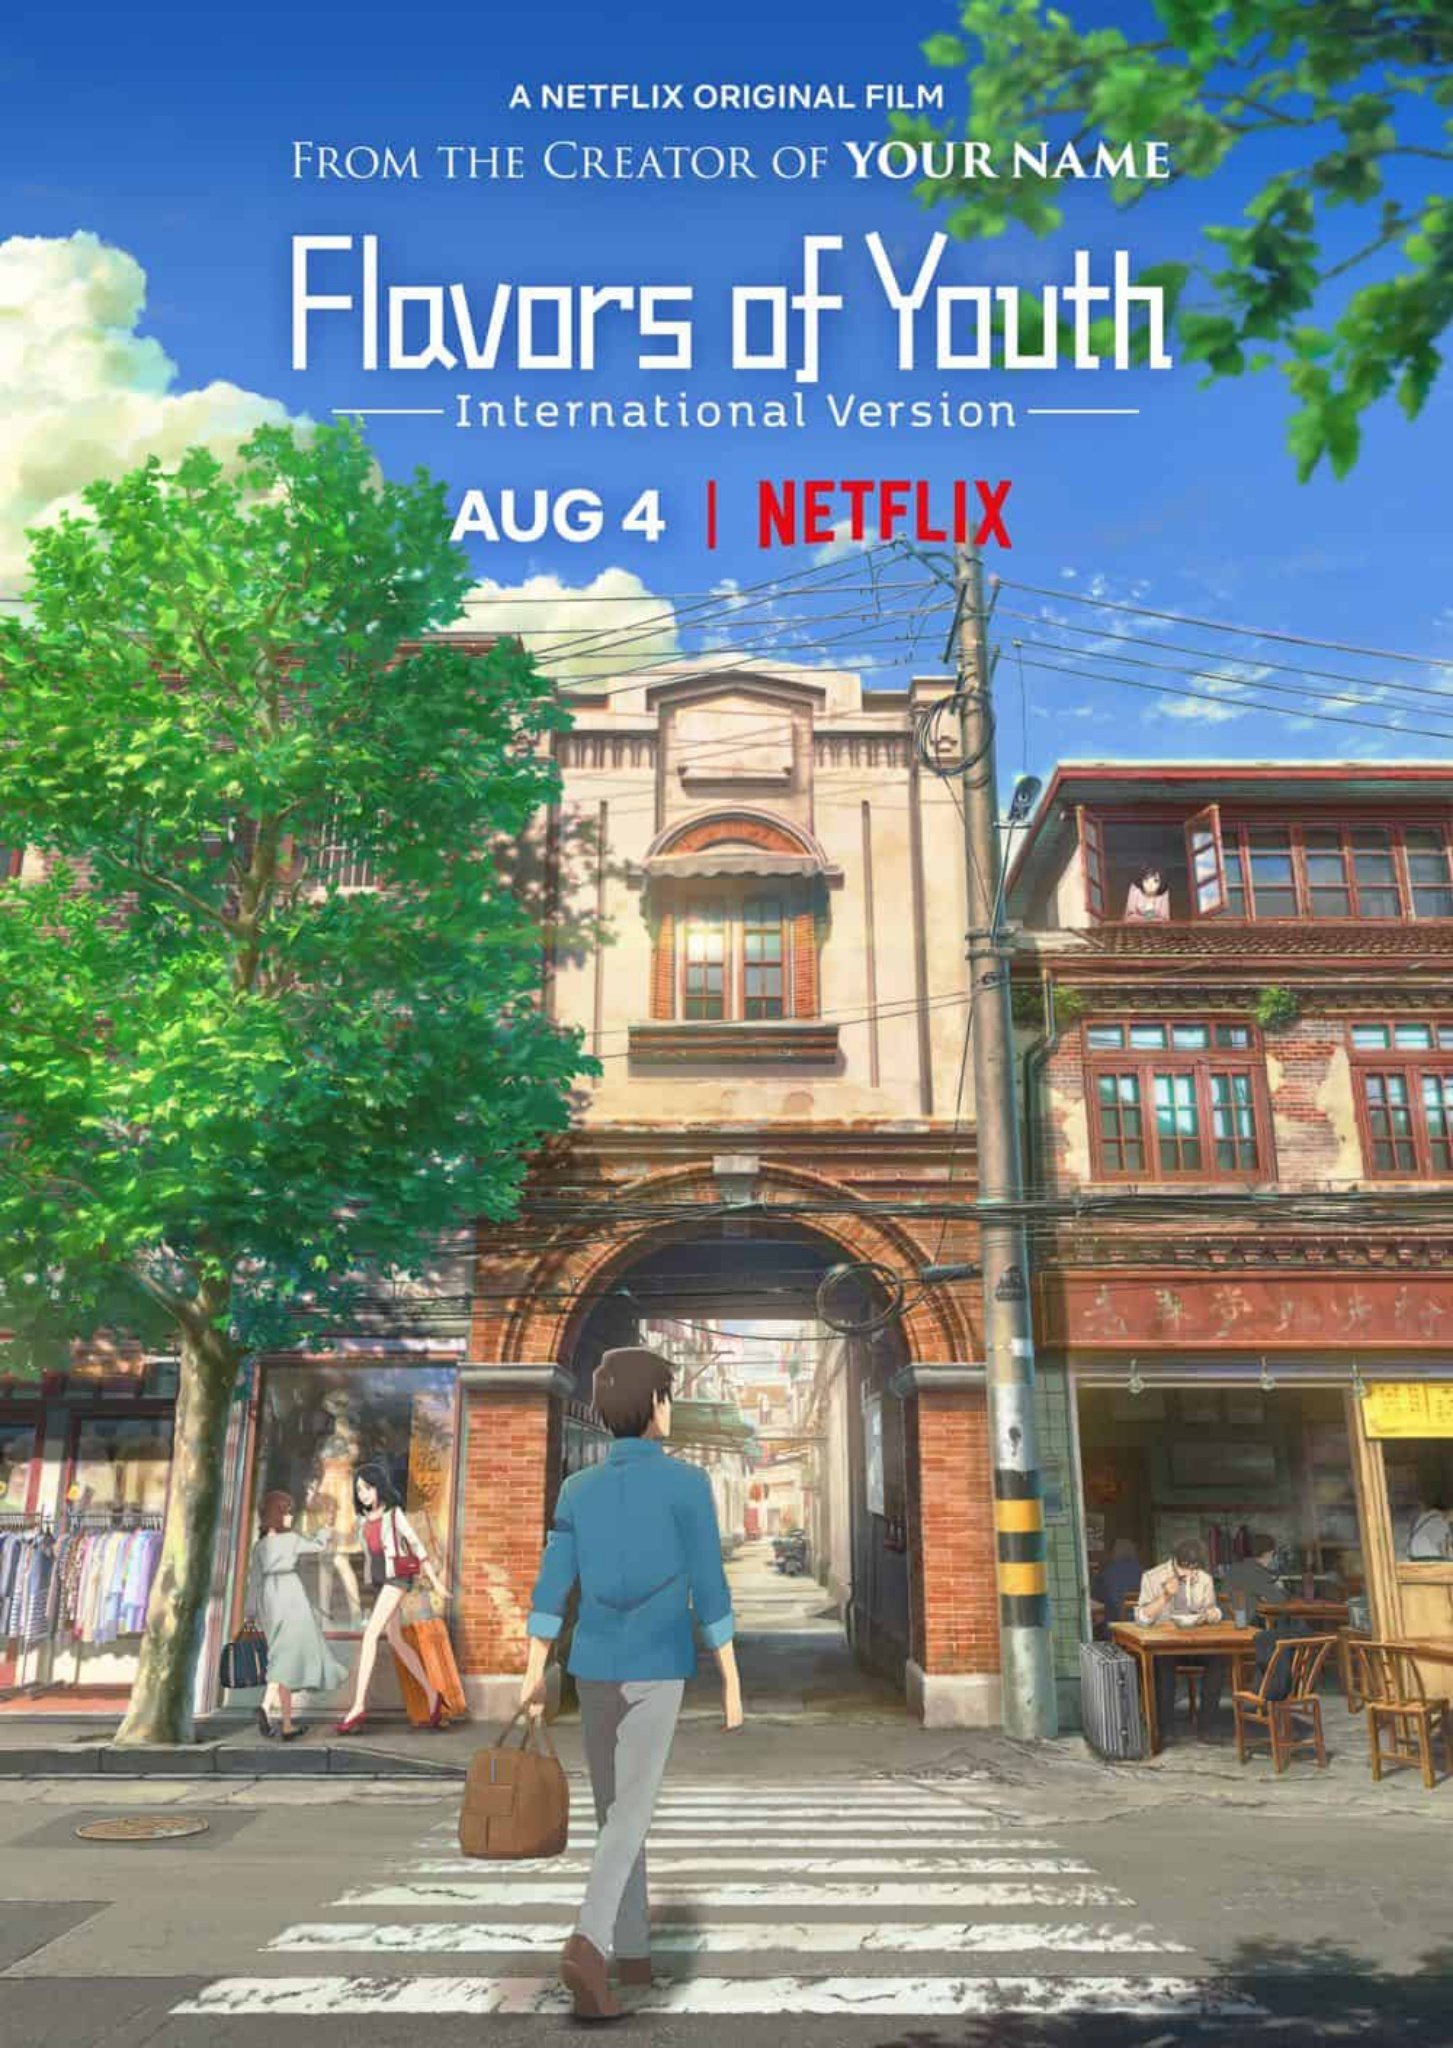 Flavors of Youth | WEB-DL | Lat/Cast/Ing/Jap/Chi+Sub |MKV-1080p | x264 Flavors_of_Youth